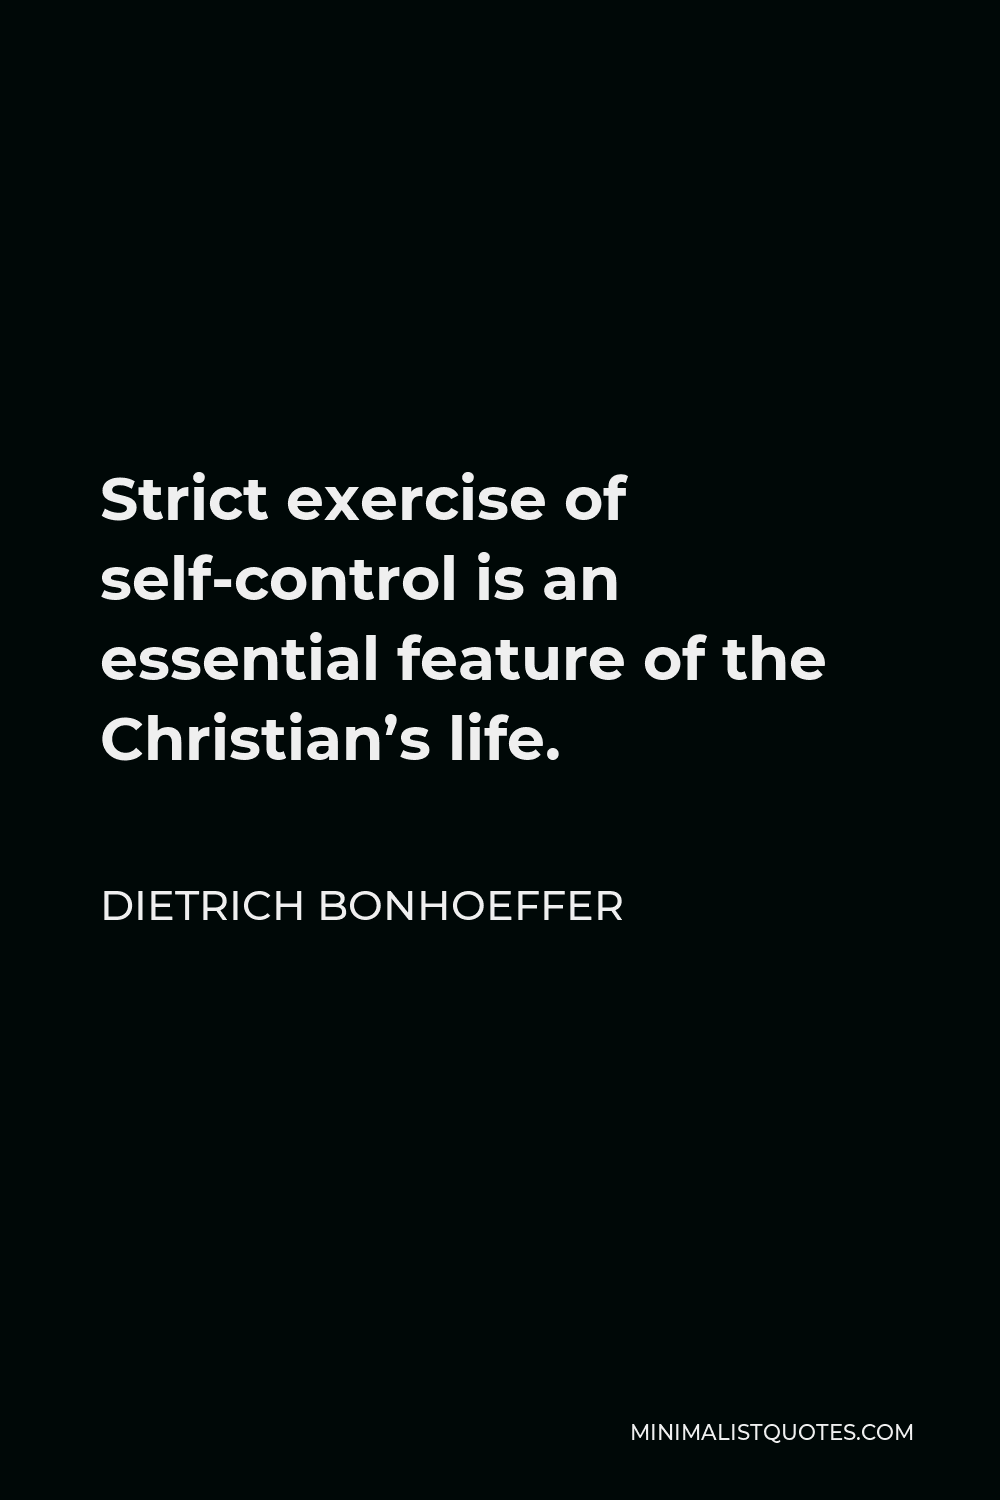 Dietrich Bonhoeffer Quote - Strict exercise of self-control is an essential feature of the Christian's life.